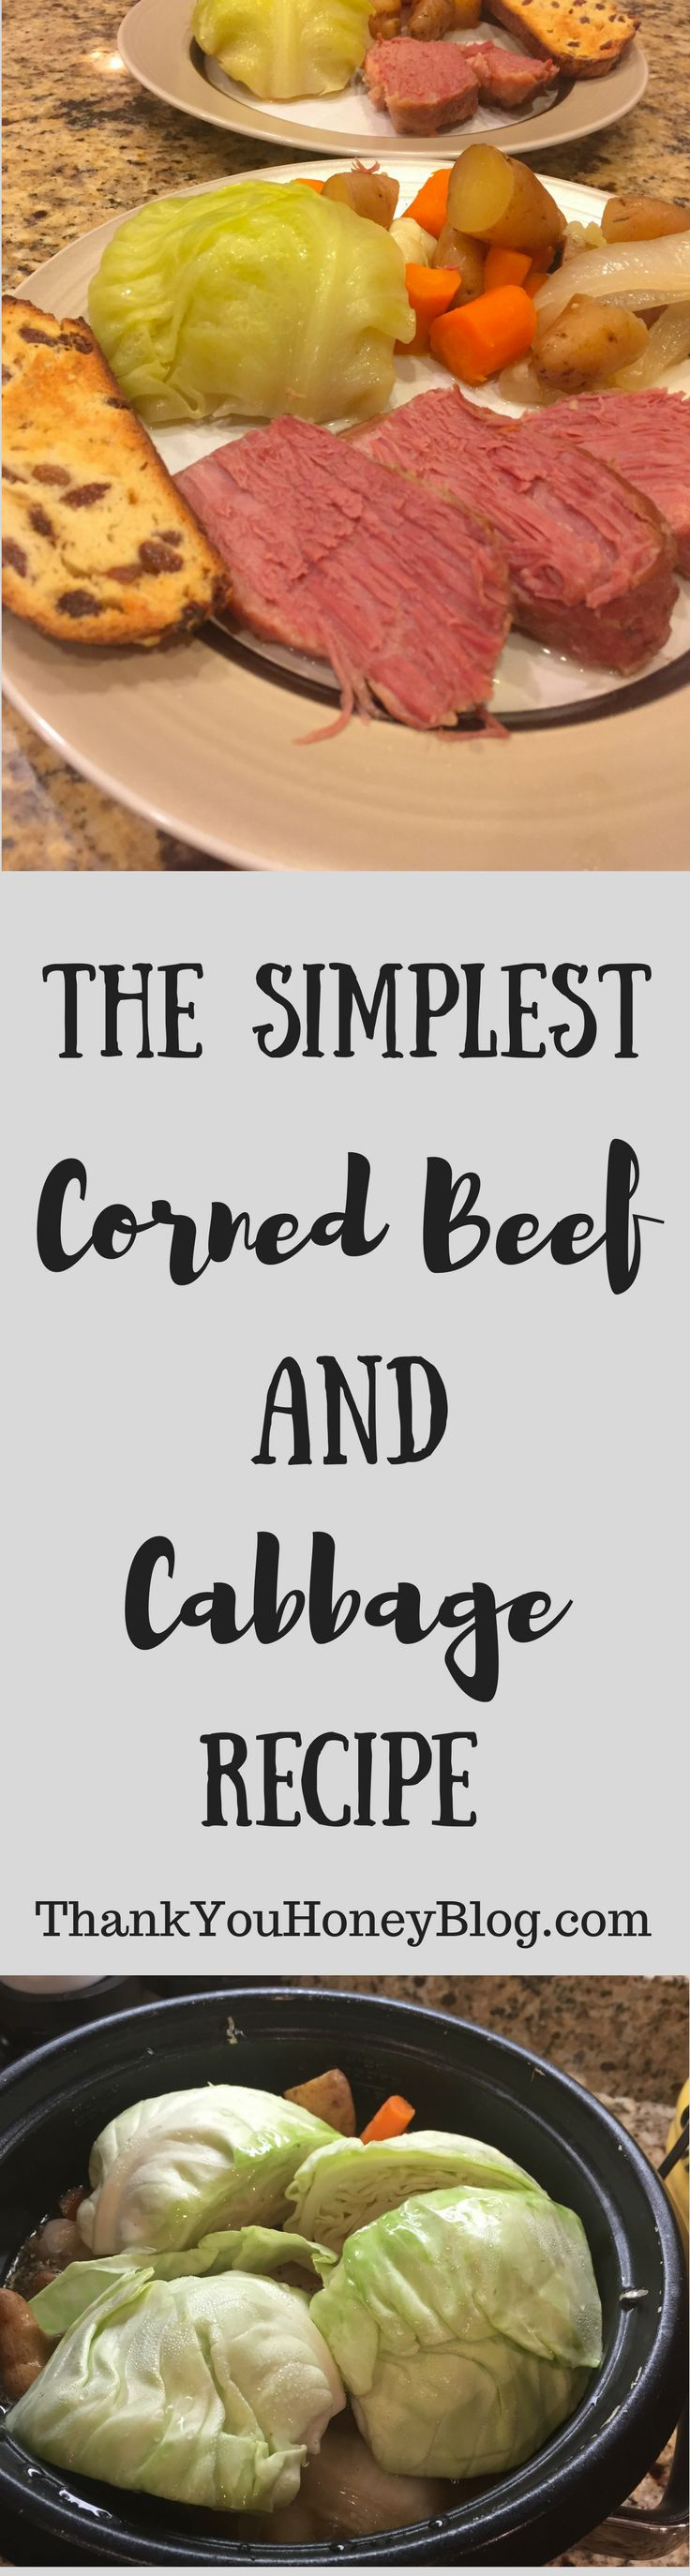 The Simplest Corned Beef and Cabbage Recipe perfect for St. Patrick's Day. Slow- cooked and packed with flavor. #recipe #paleo #whole30 #cleaneating #stpatricksday